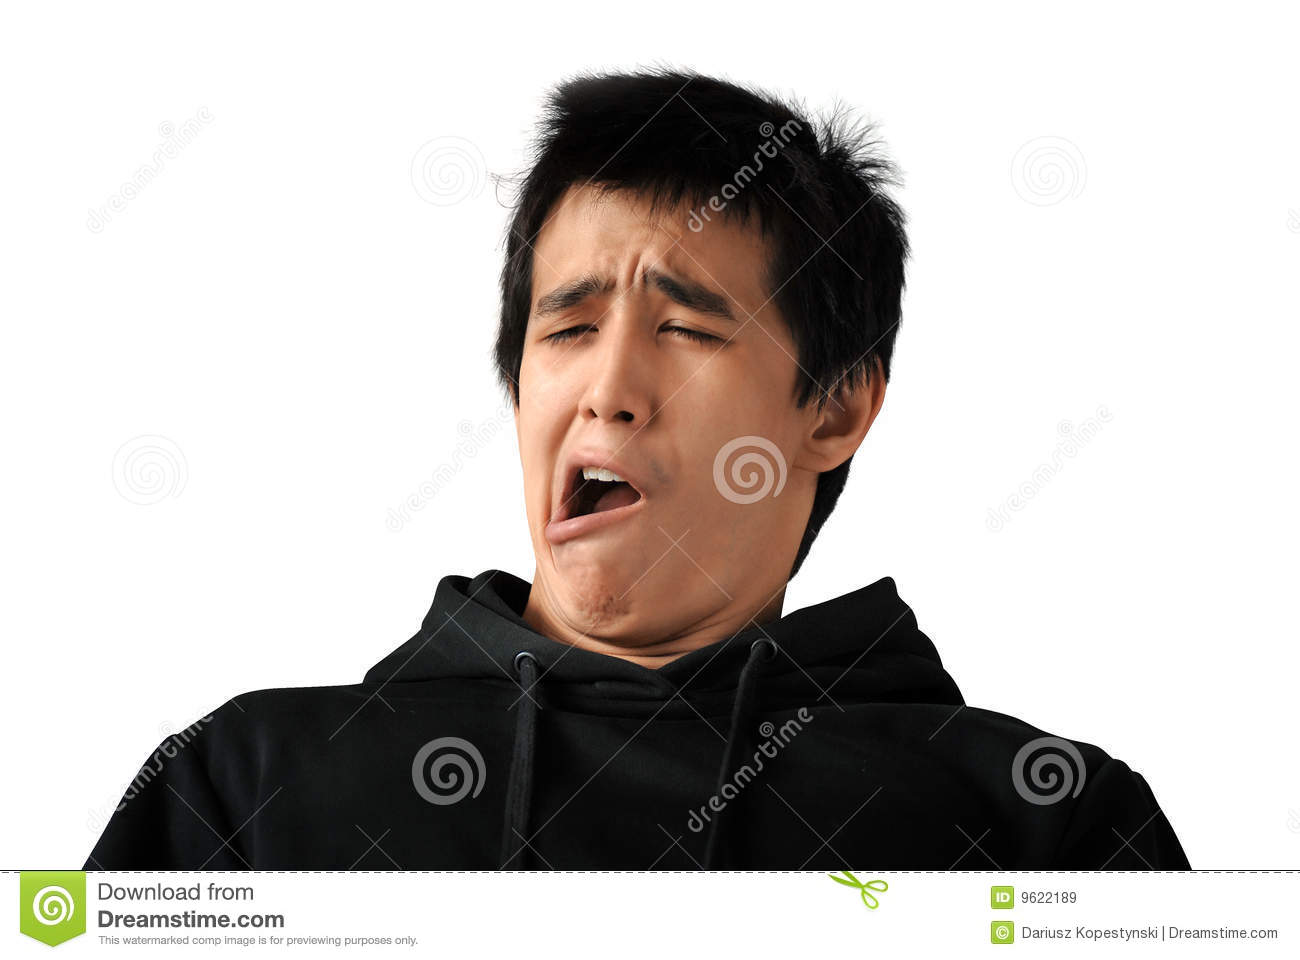 Yawning Student Royalty Free Stock Images - Image: 9622189